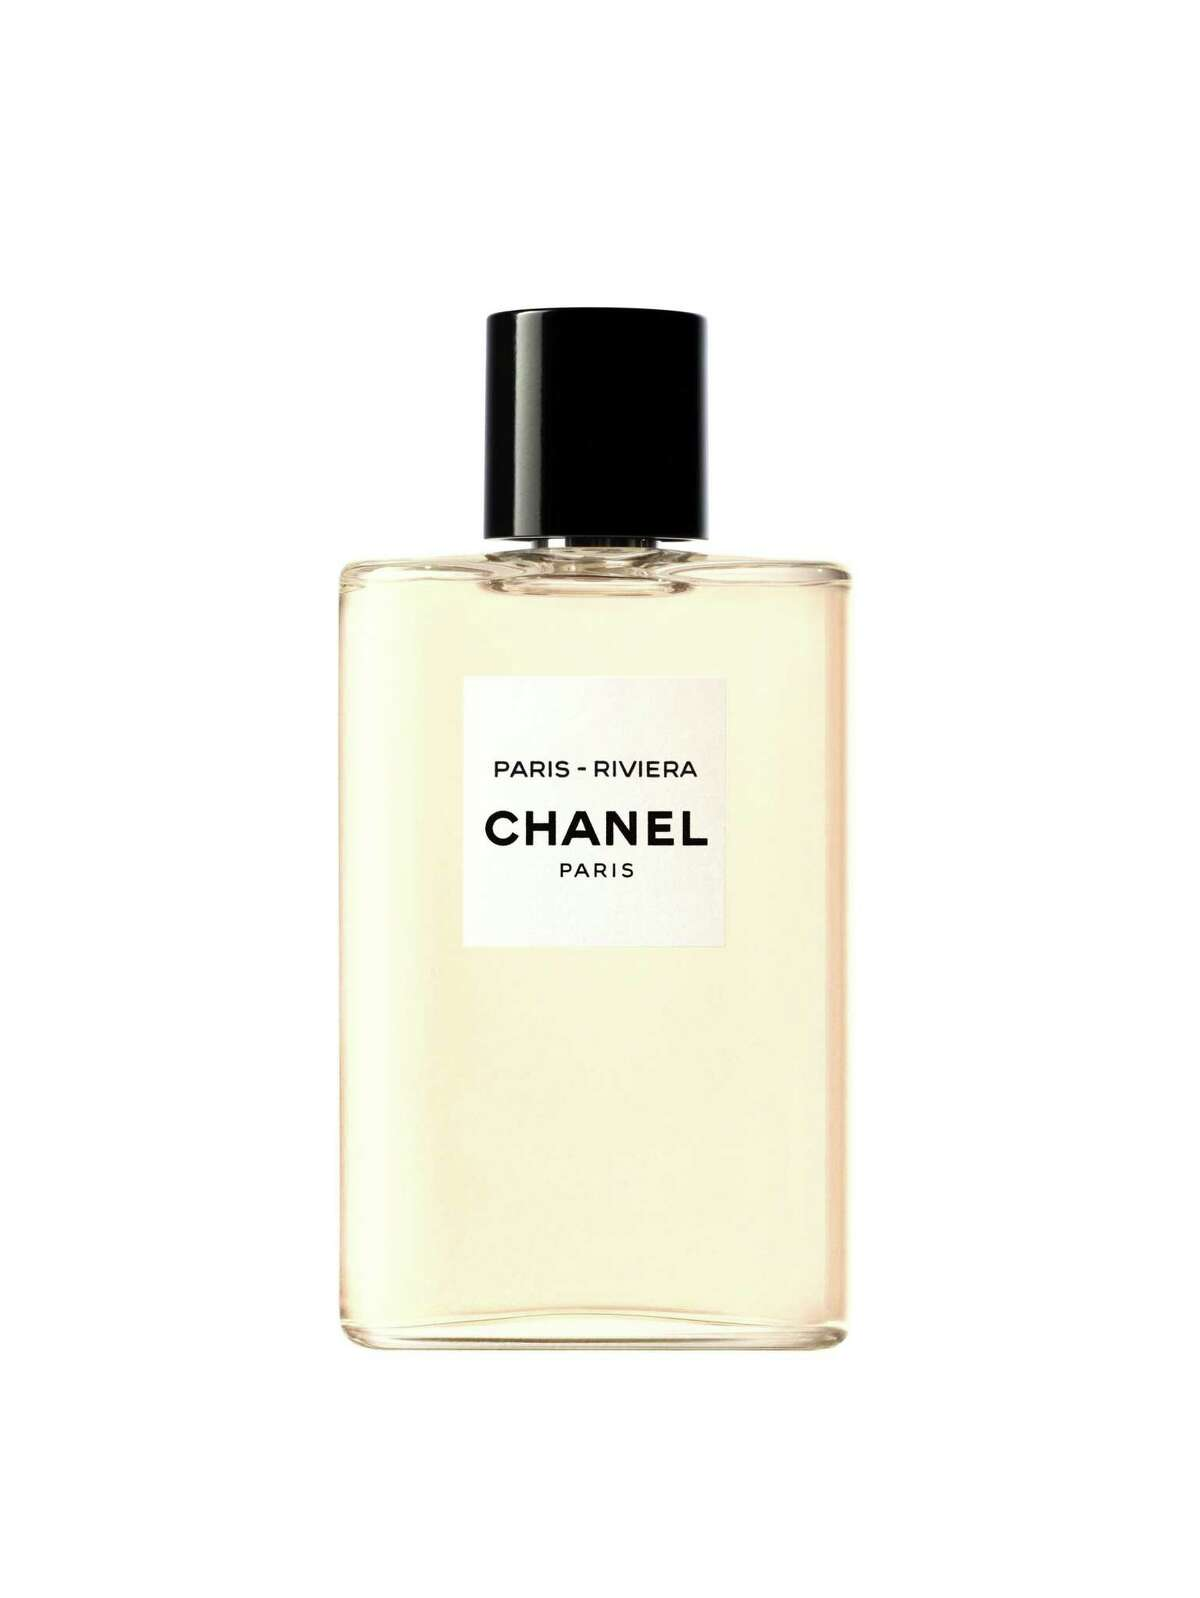 Chanel's Les Eaux de Chanel fragrances inspired by Coco's travels now includes Paris-Riviera, limited-edition evocation of the summer frolic on the Riviera, circa 1920s, heady with neroli, orange blossom, citrus and white flowers; $130 at Nordstrom.